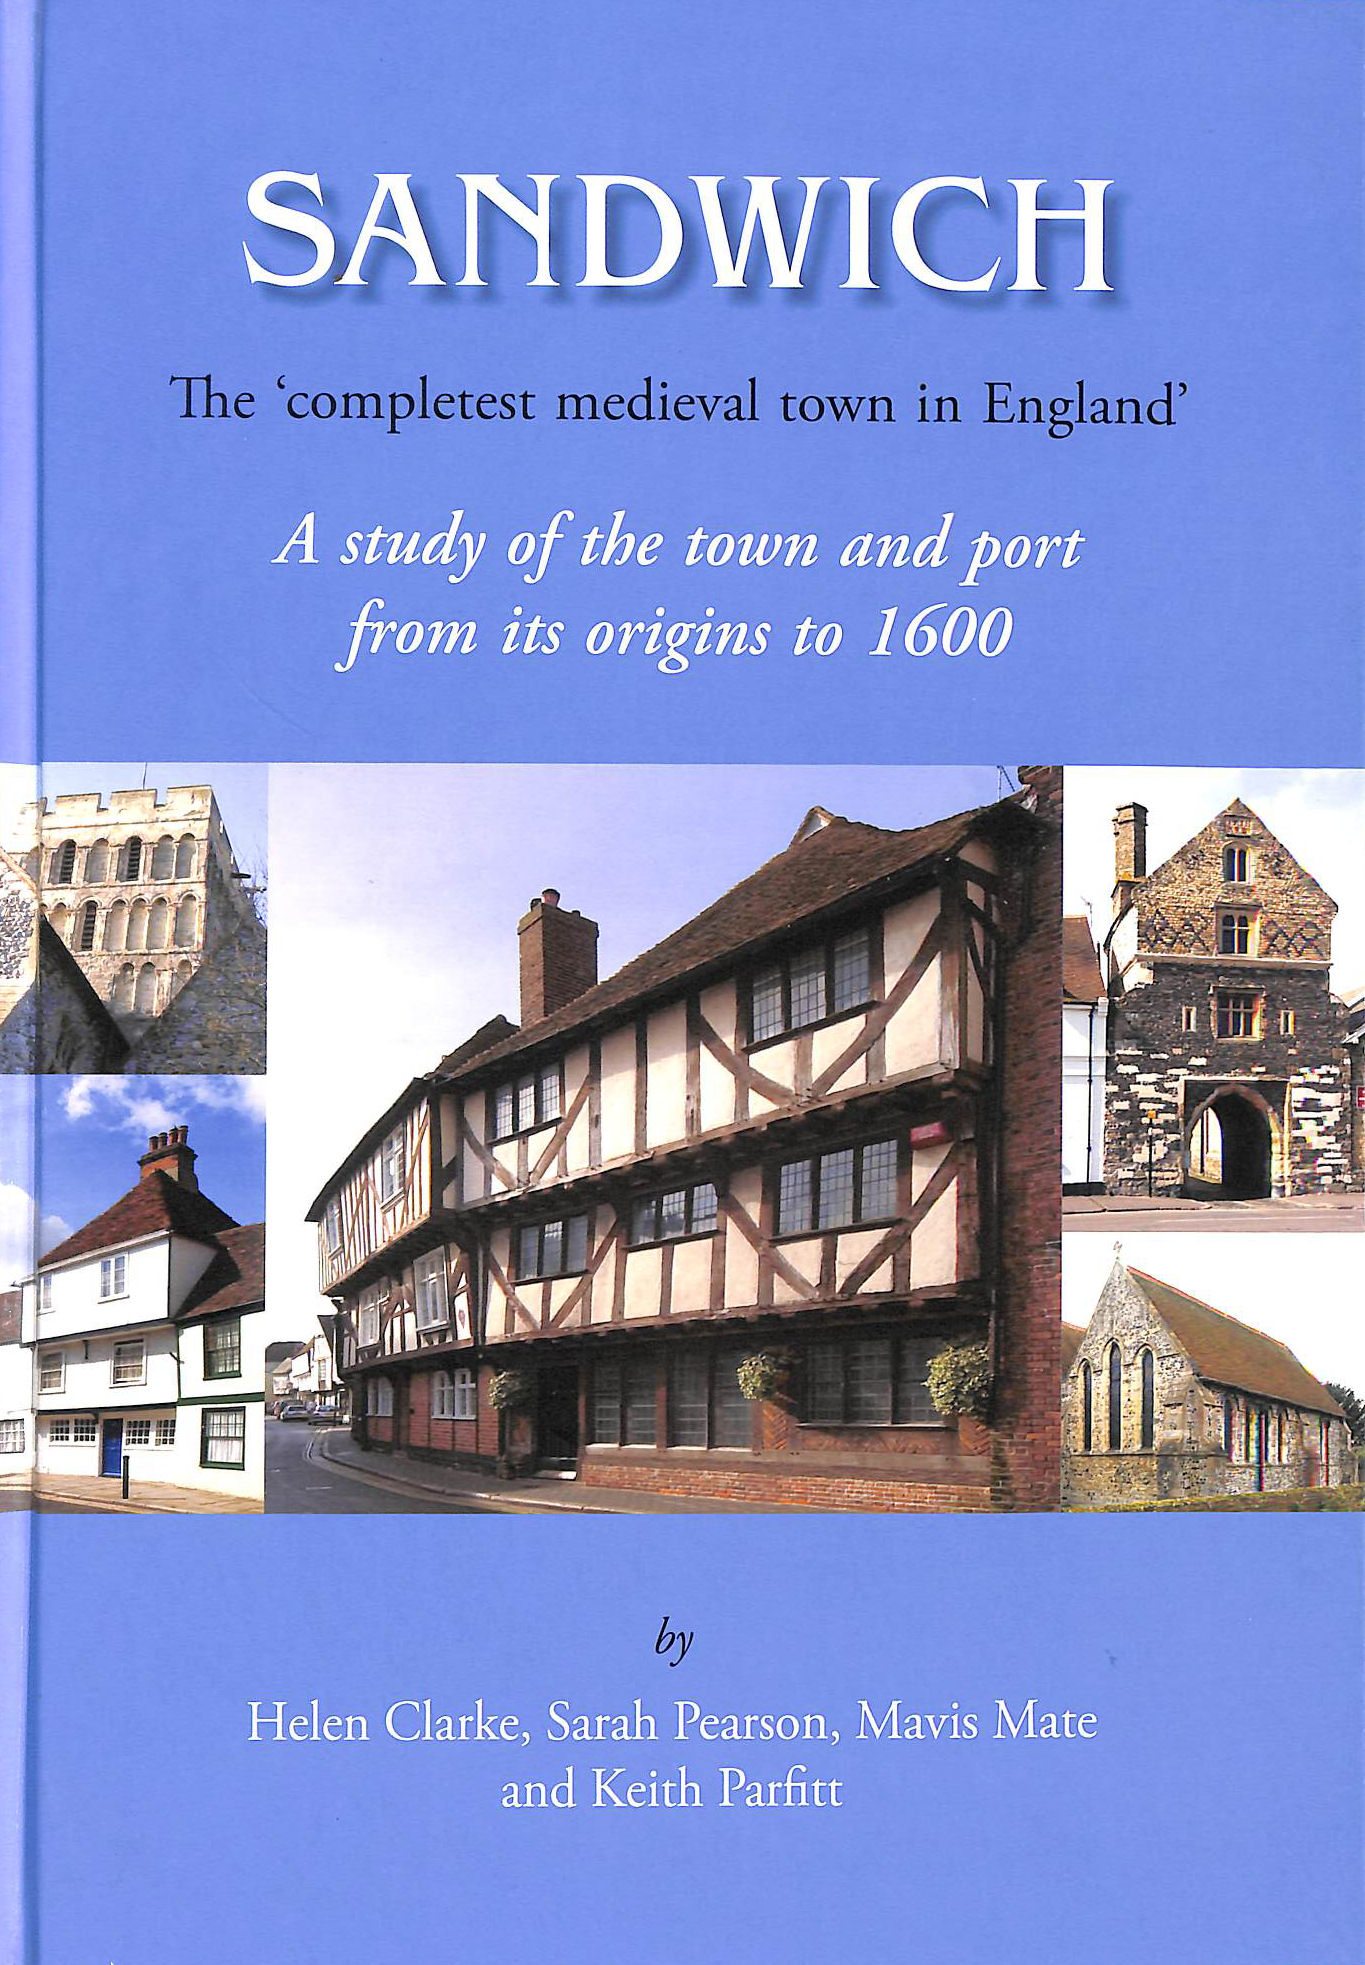 Image for Sandwich - The 'Completest Medieval Town in England'